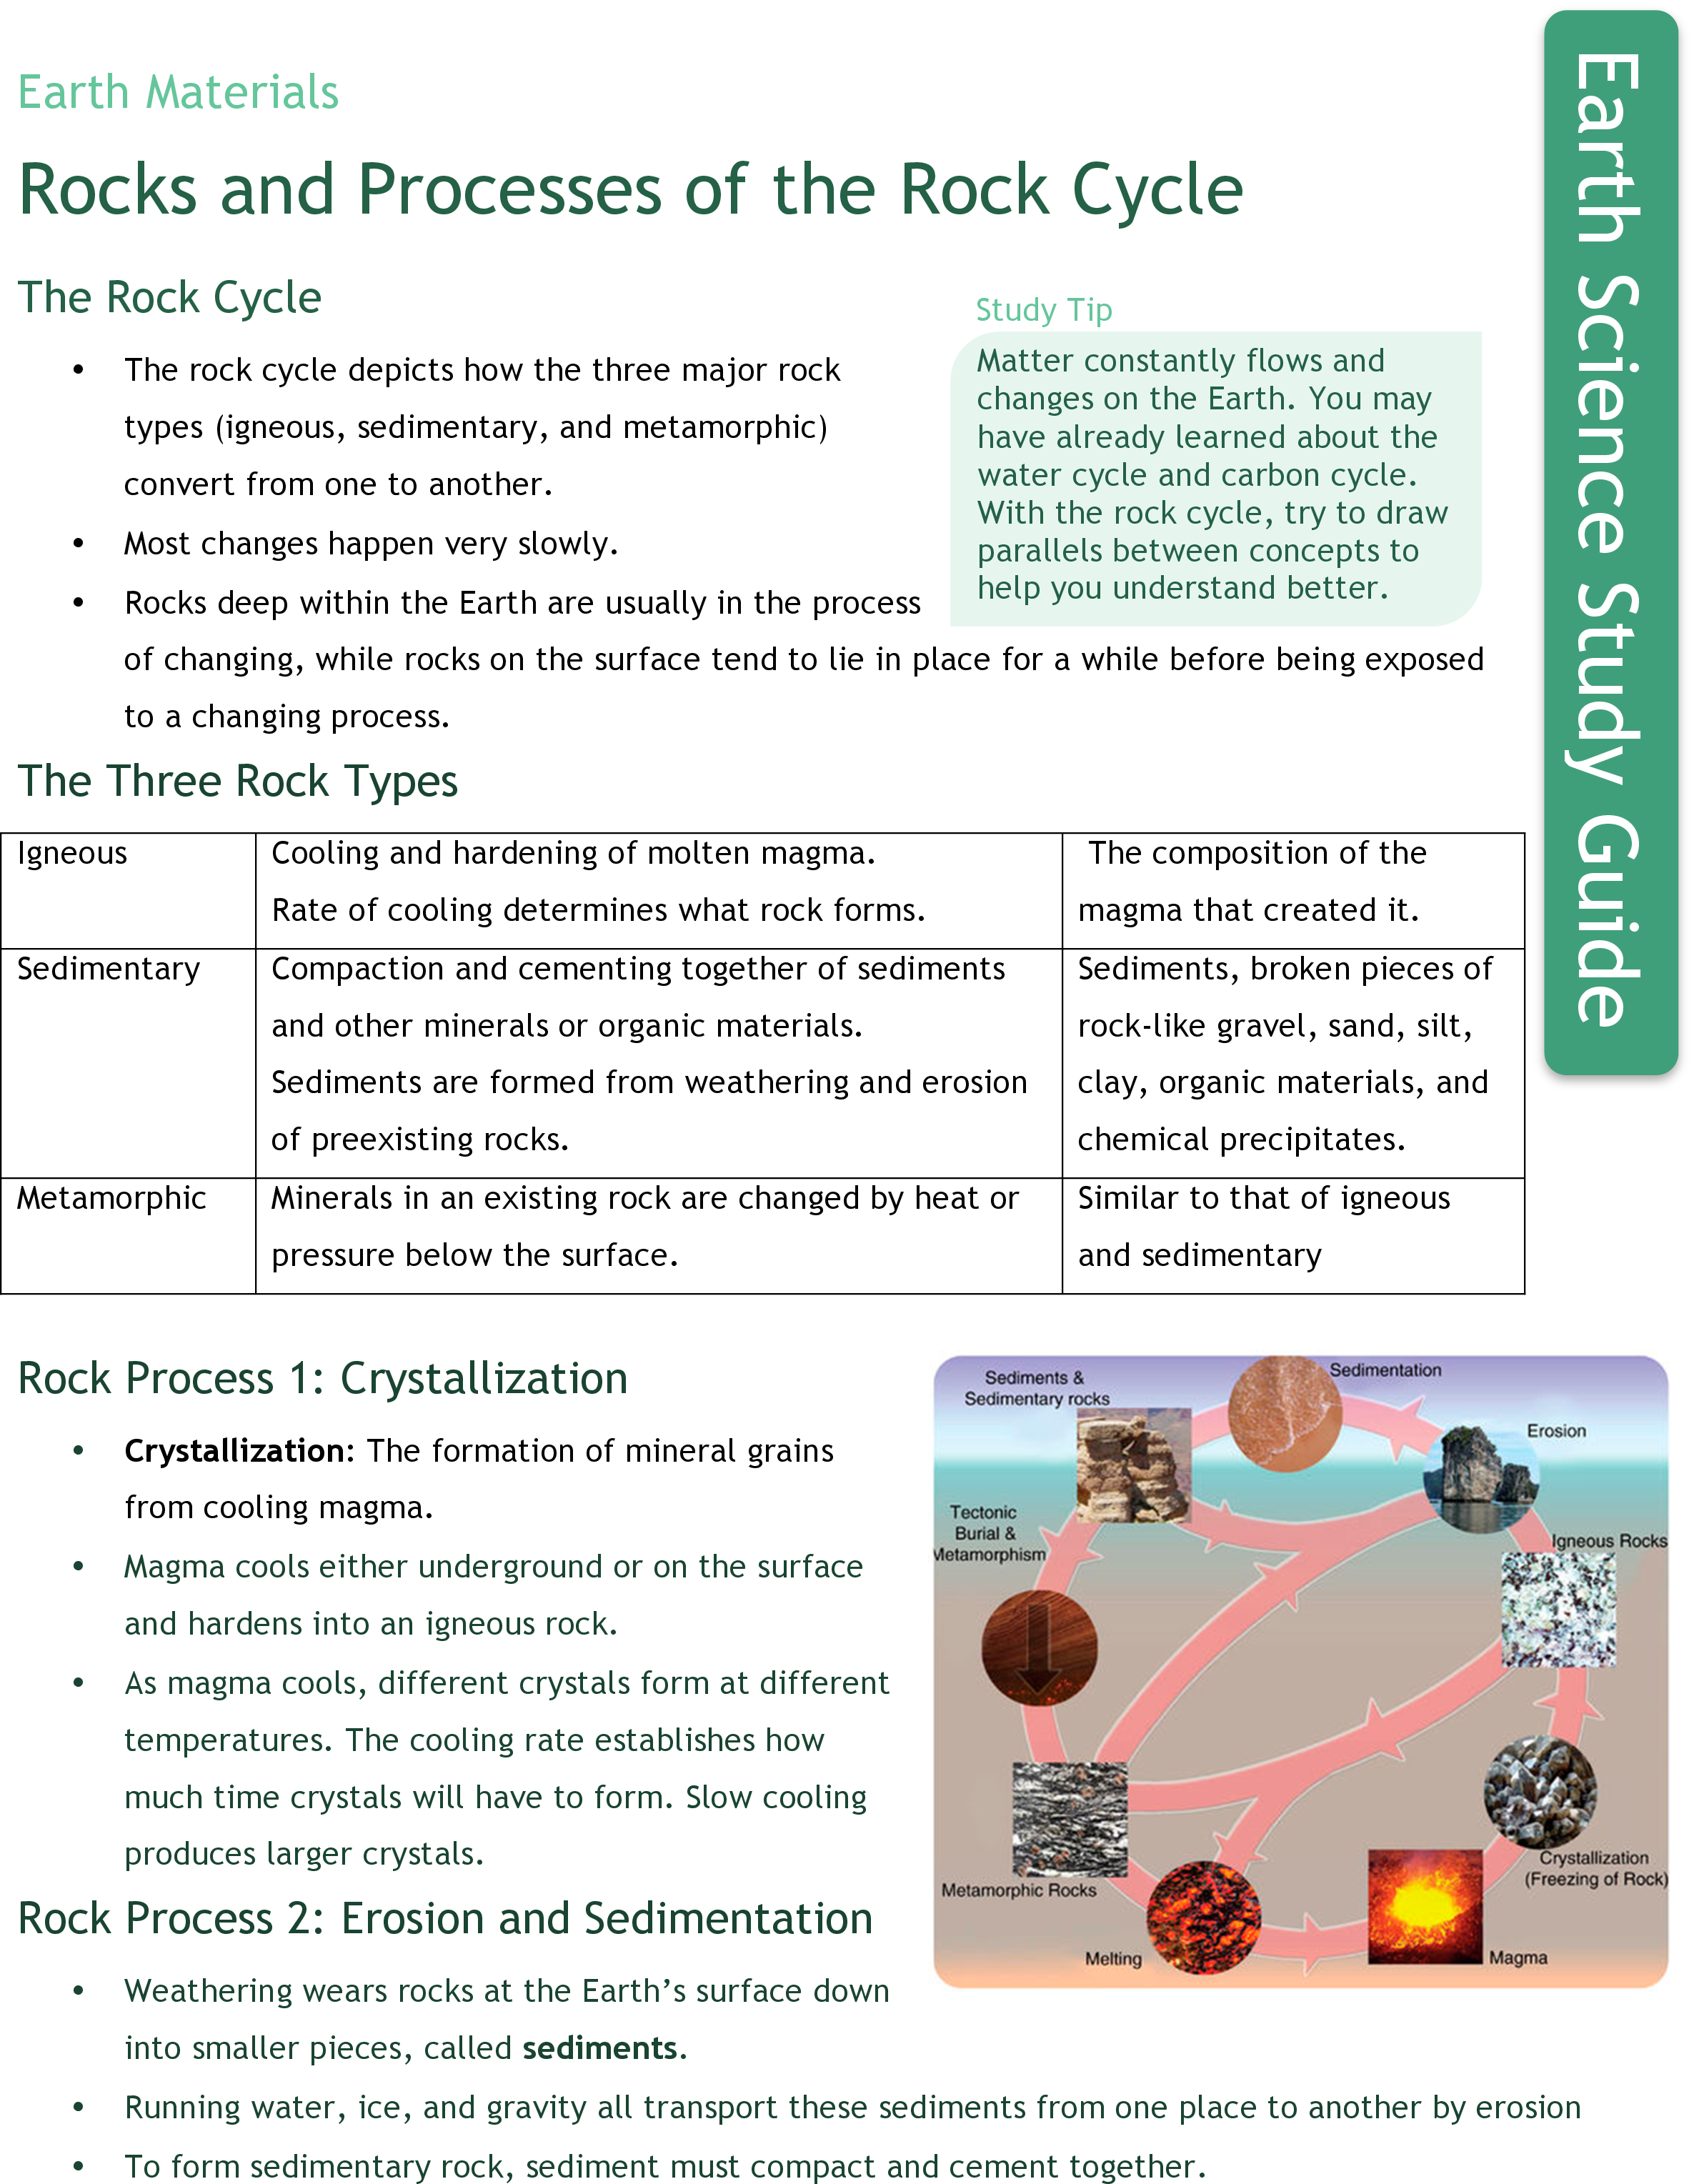 Rock Cycle Processes | CK-12 Foundation